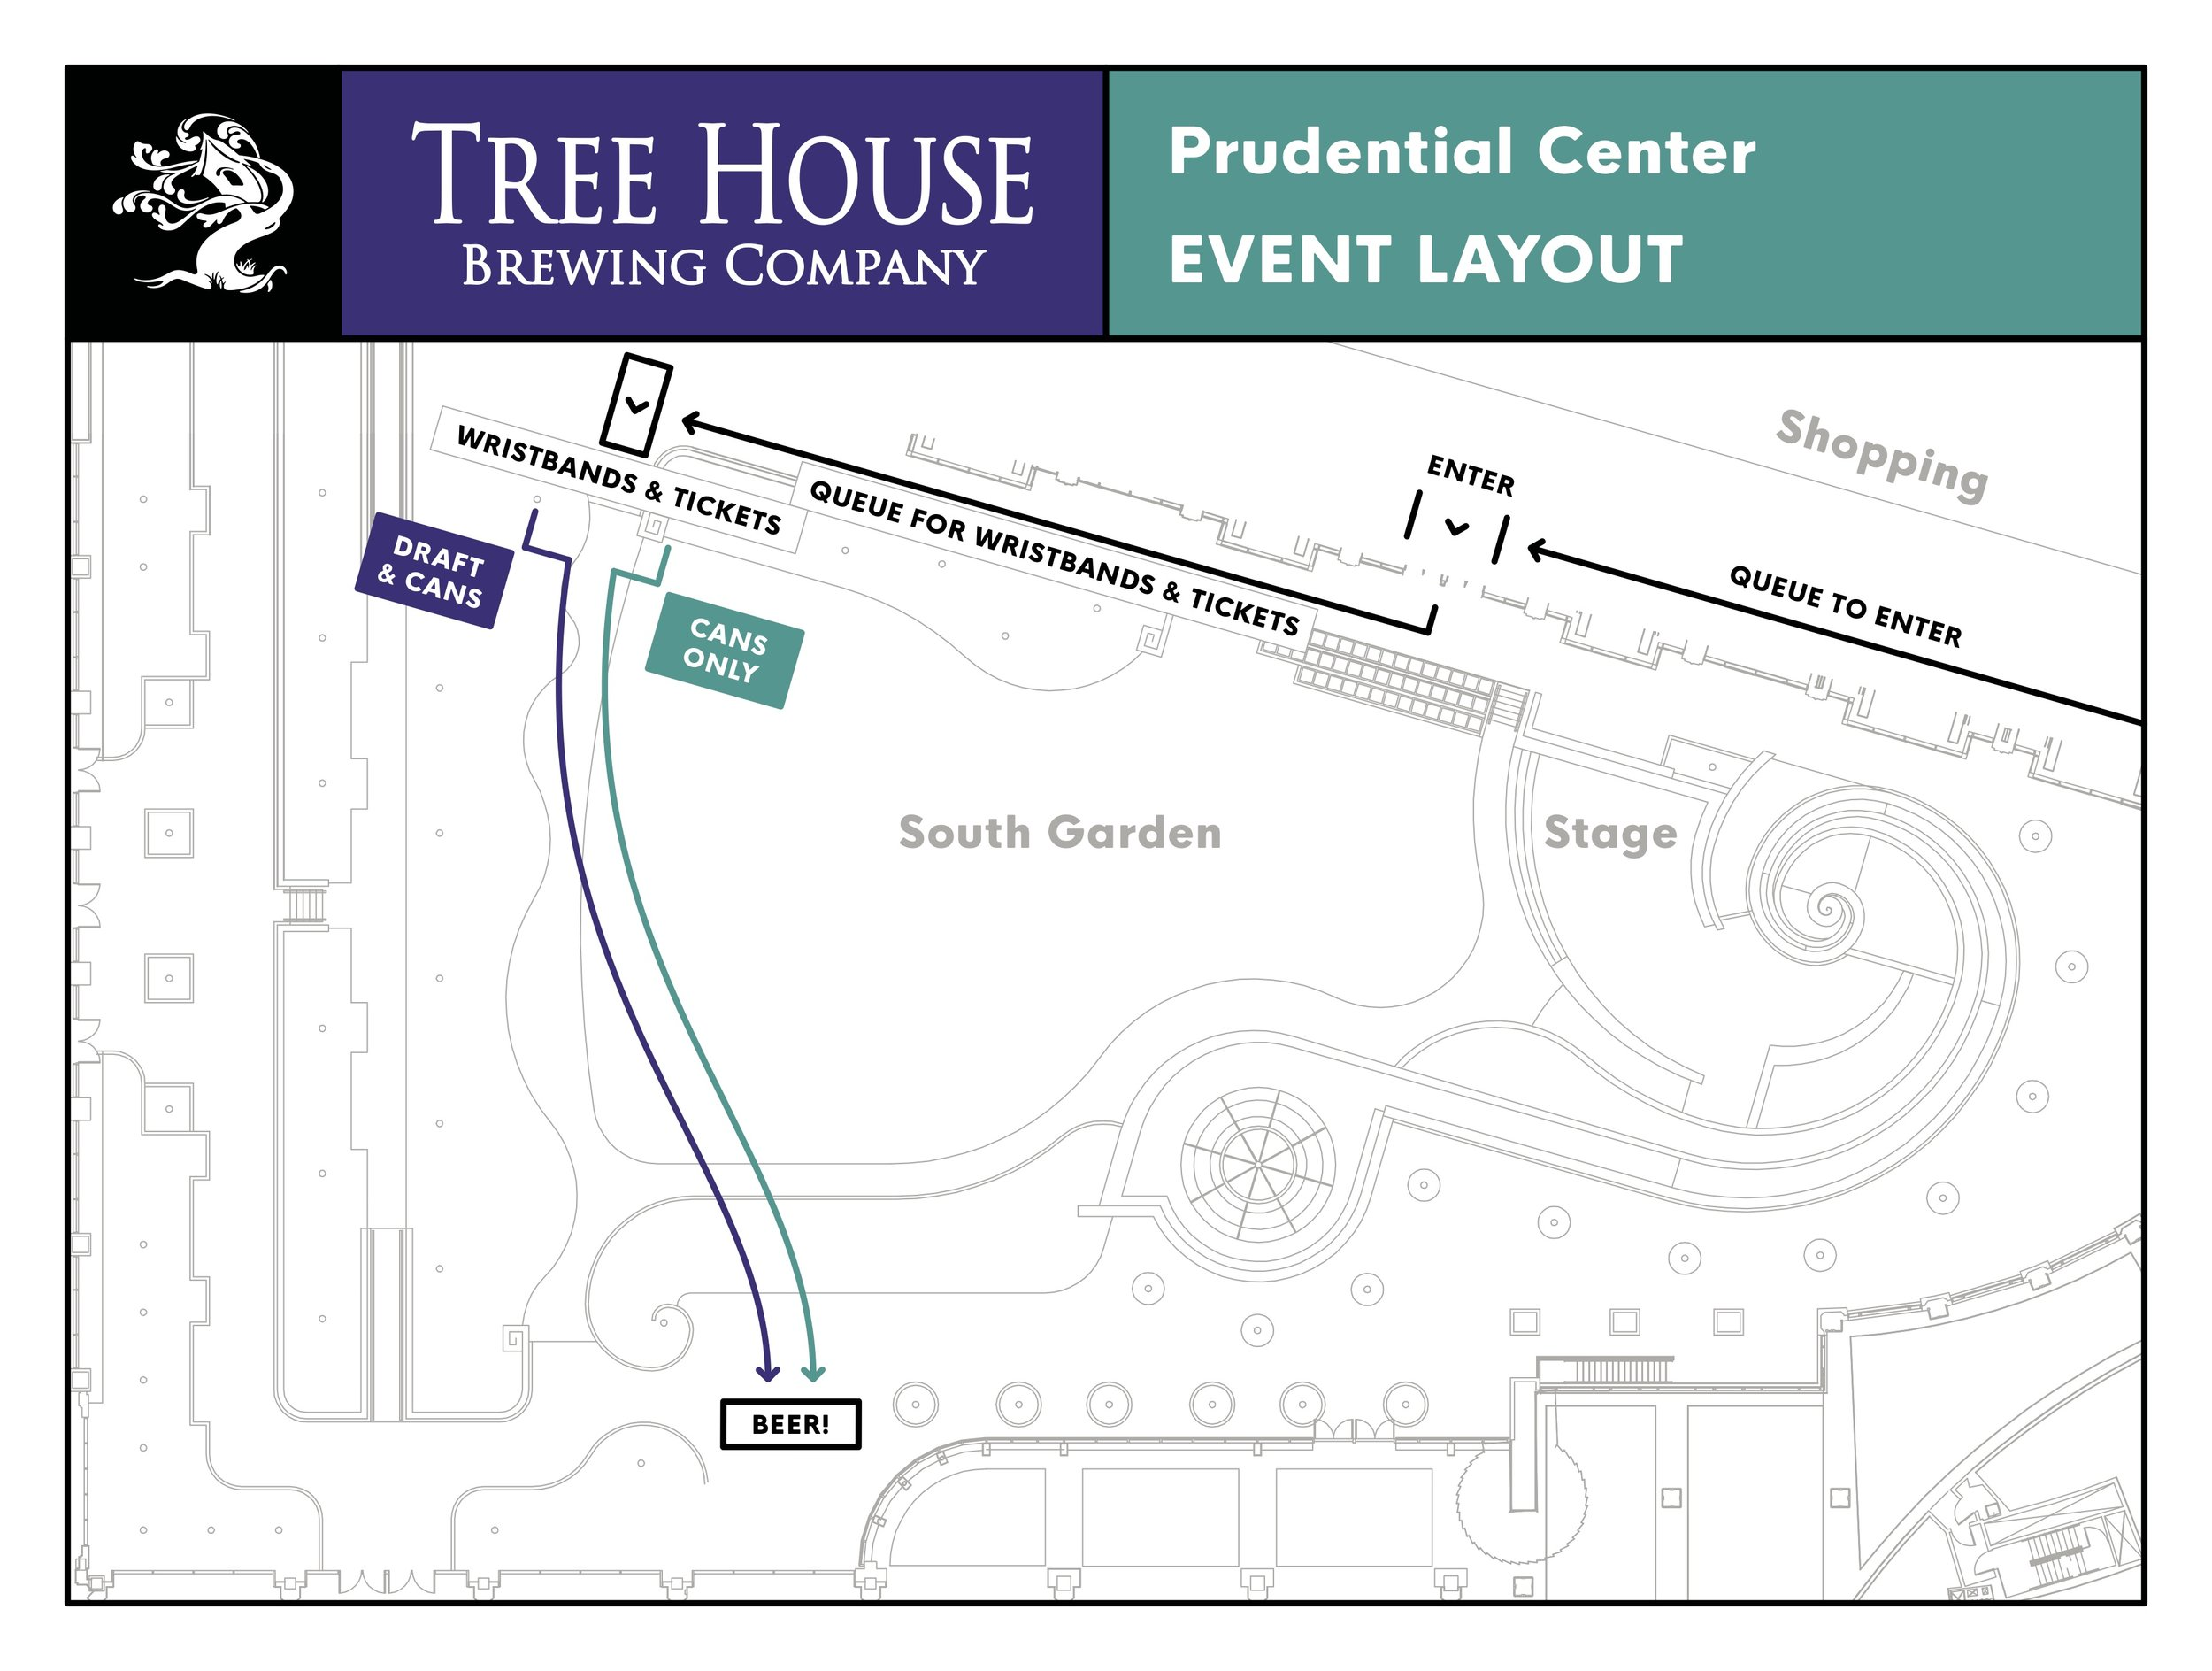 Tree_House_Brewing_Prudential_Center_Event_Map_No_You_Are_Here_Shared_For_Print_01.jpg